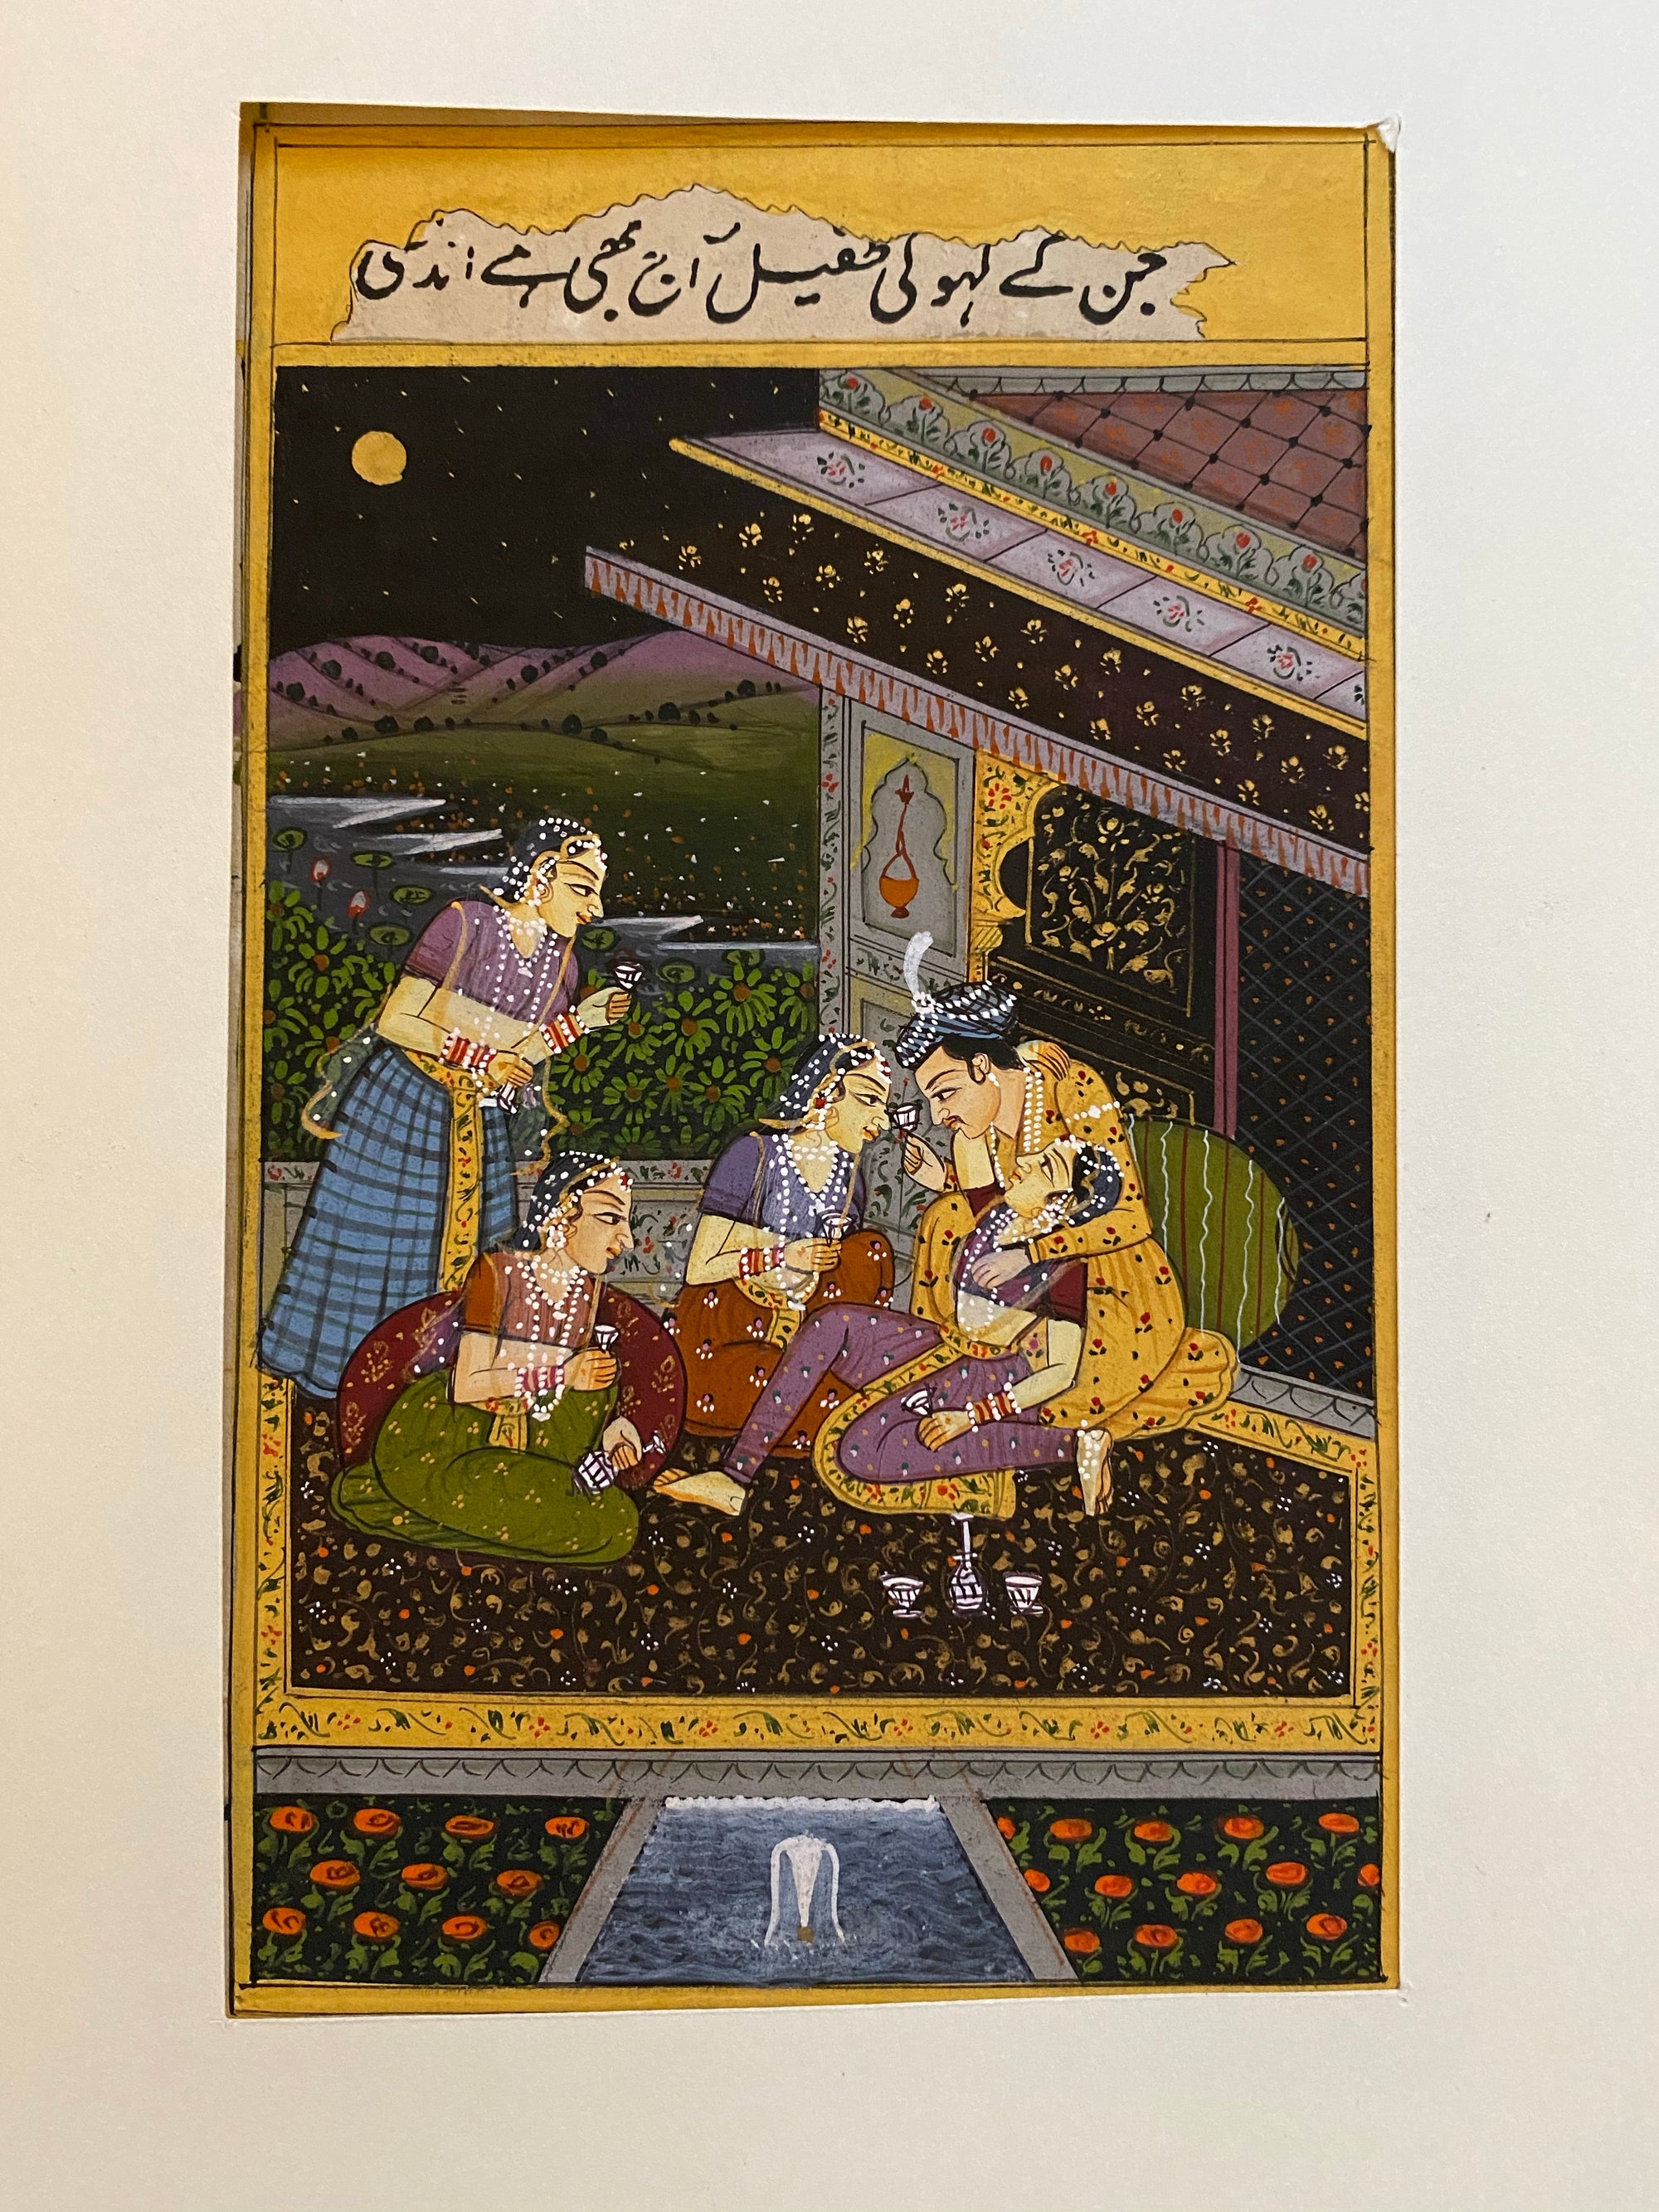 original painting in the Mogul style, depicting a classic love scene from the harem, showing a Maharaja at play with his concubines